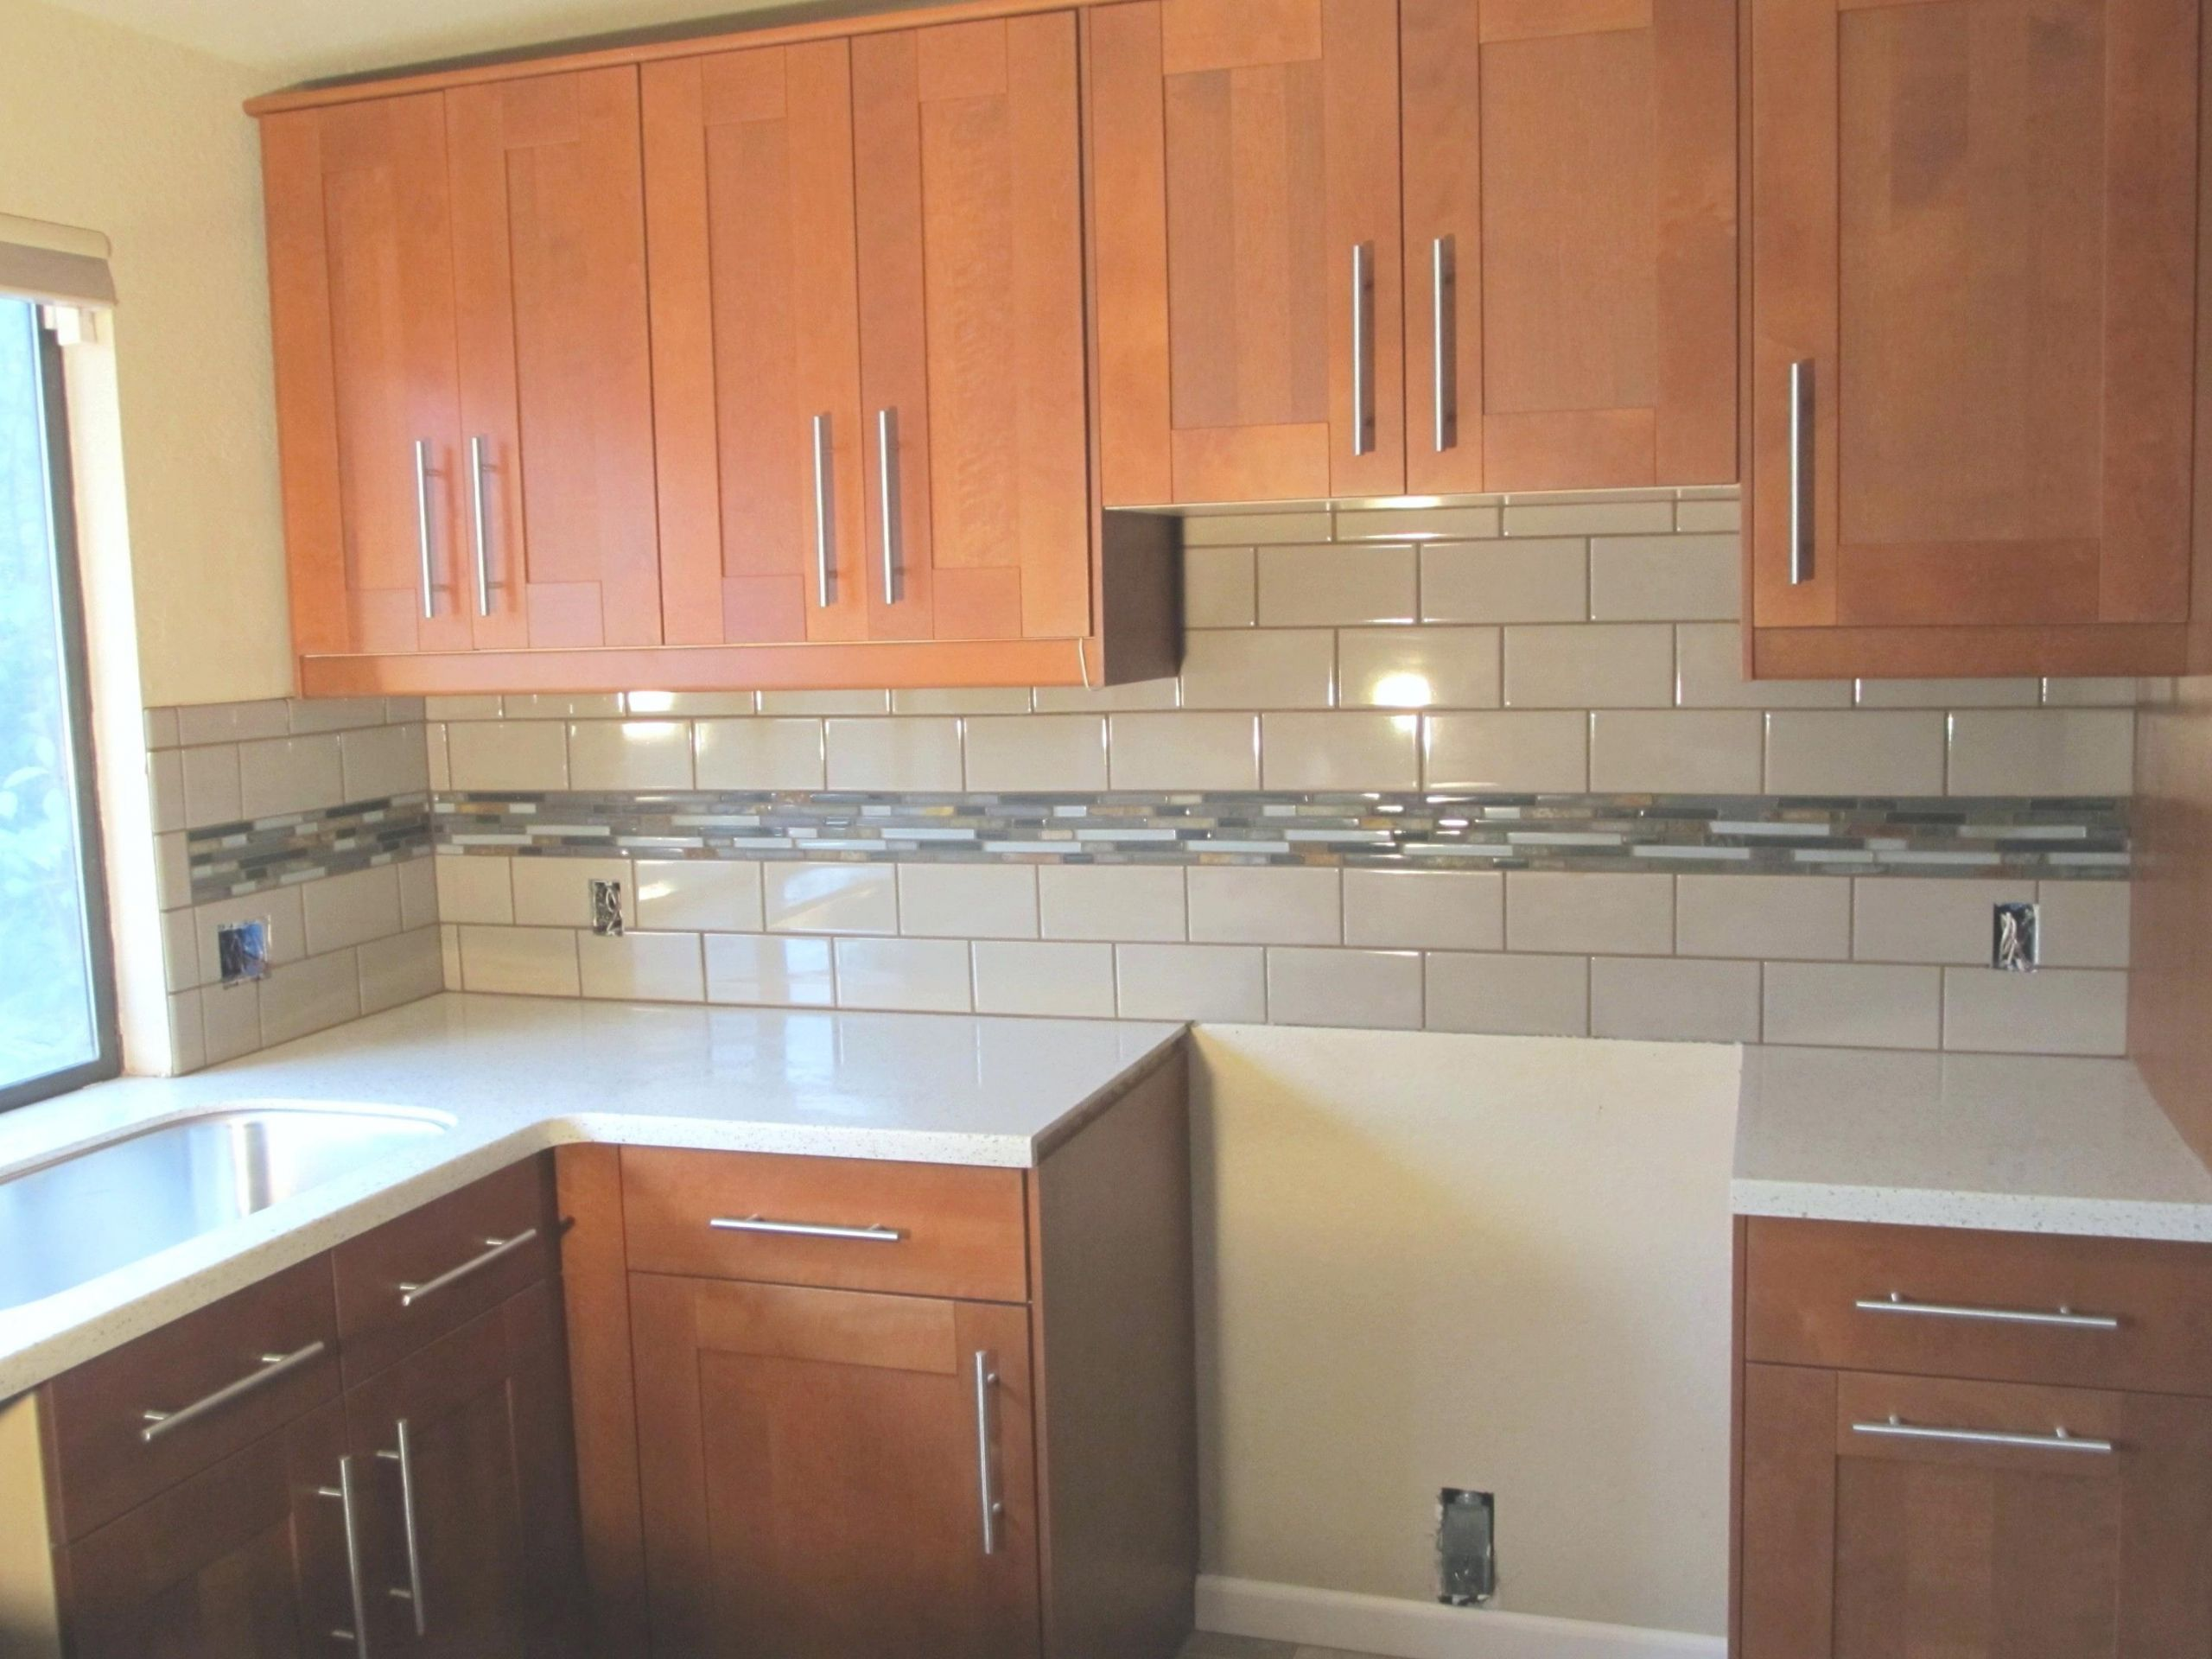 Cost Of Kitchen Backsplash  How Much Does Home Depot Charge To Install Tile